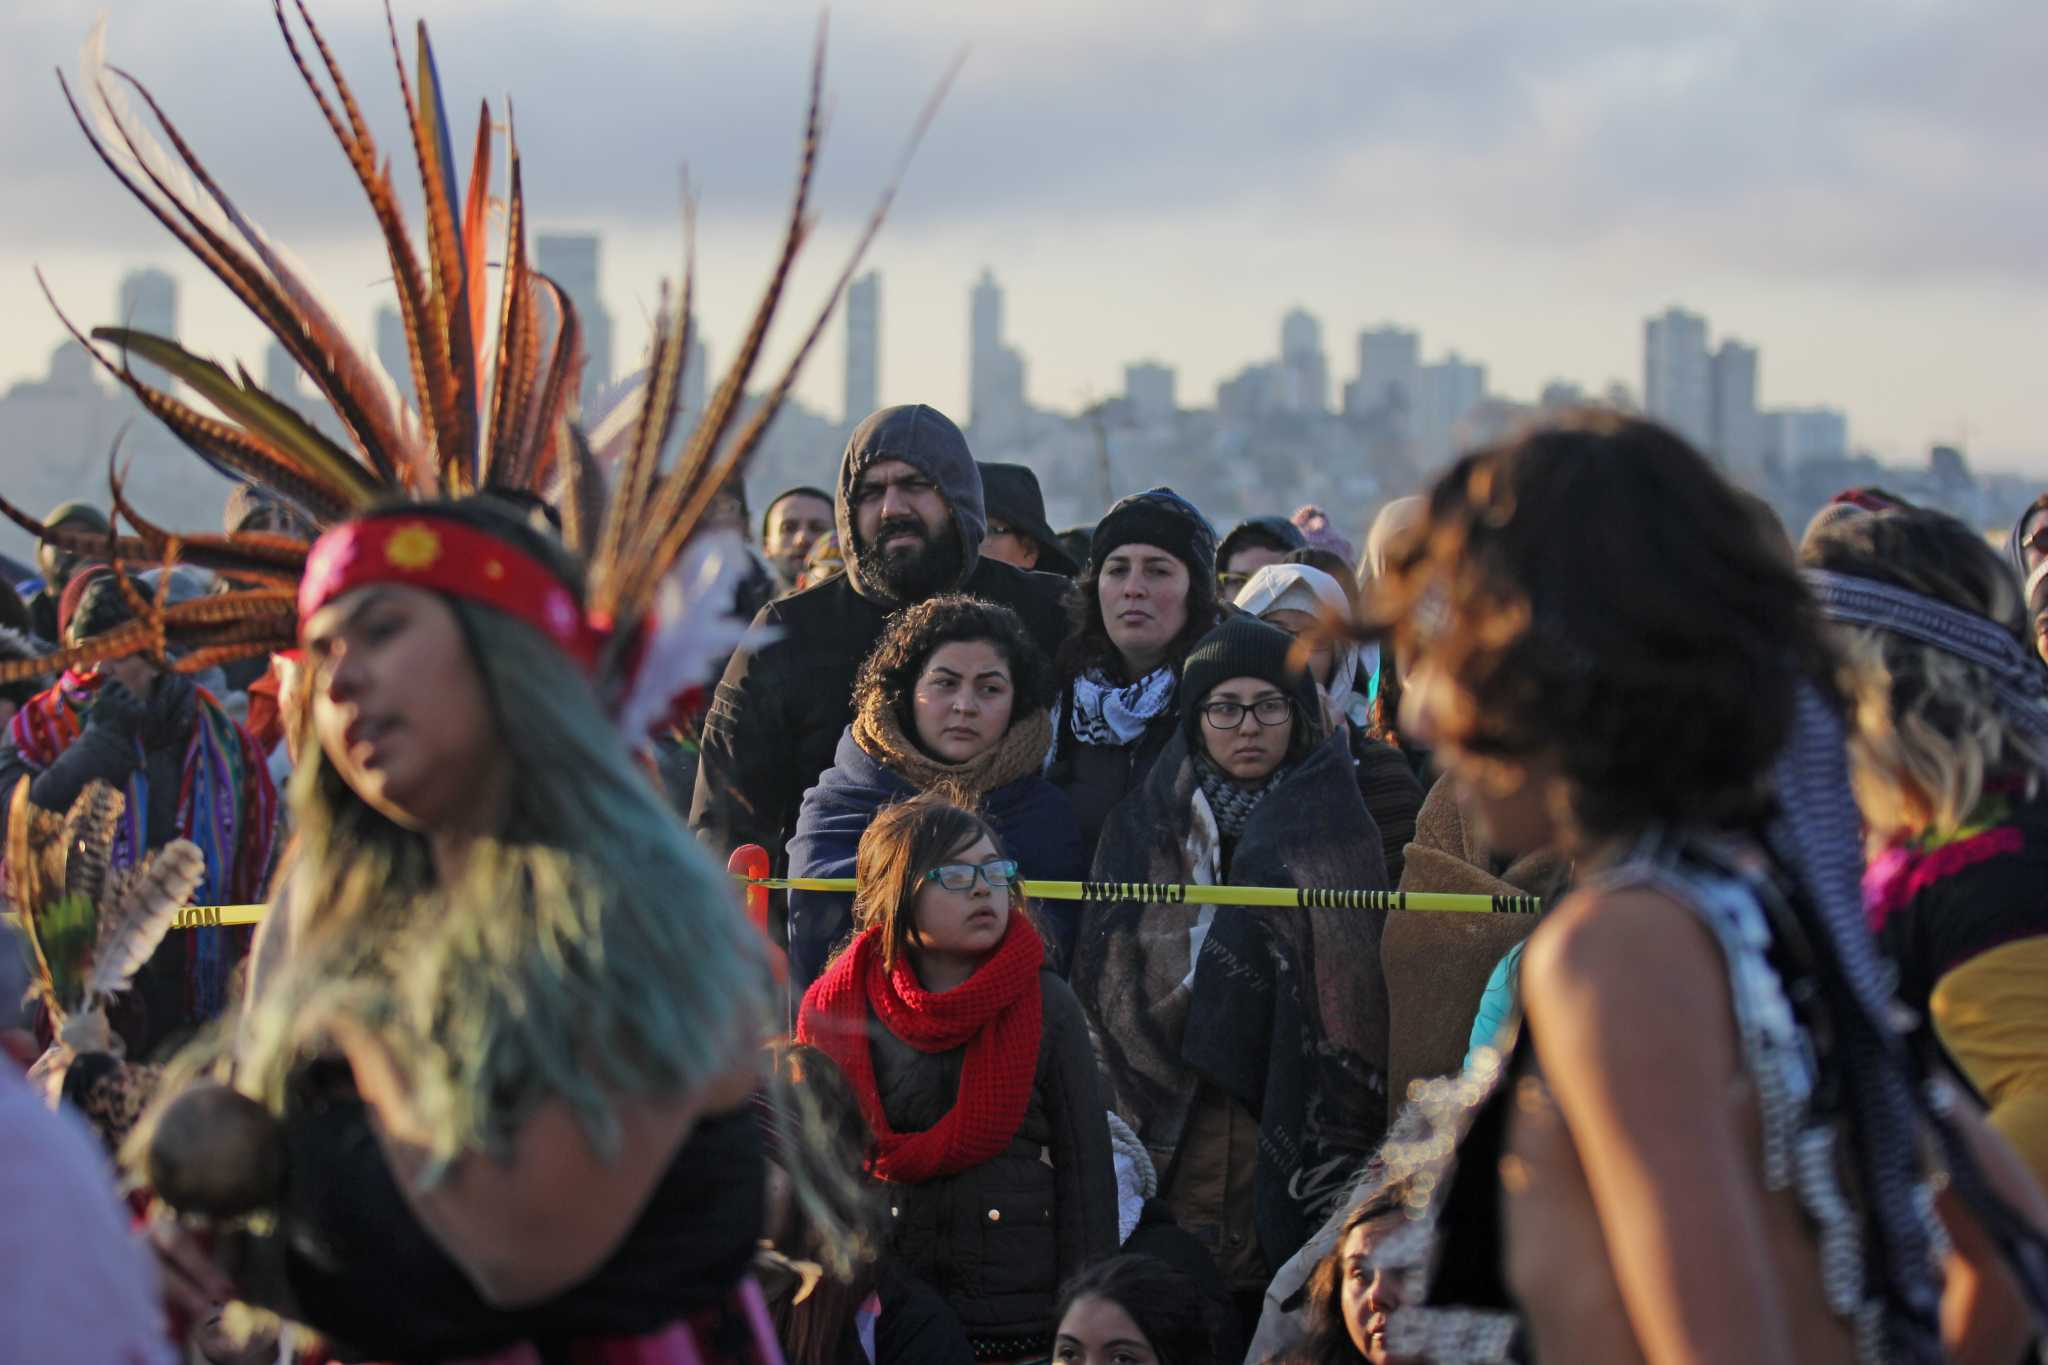 Approximately 5,000 people gathered on Alcatraz Island to celebrate the sunrise during the annual Indigenous Peoples Sunrise Ceremony on Thursday, Nov. 24, 2016. (George Morin/Xpress)